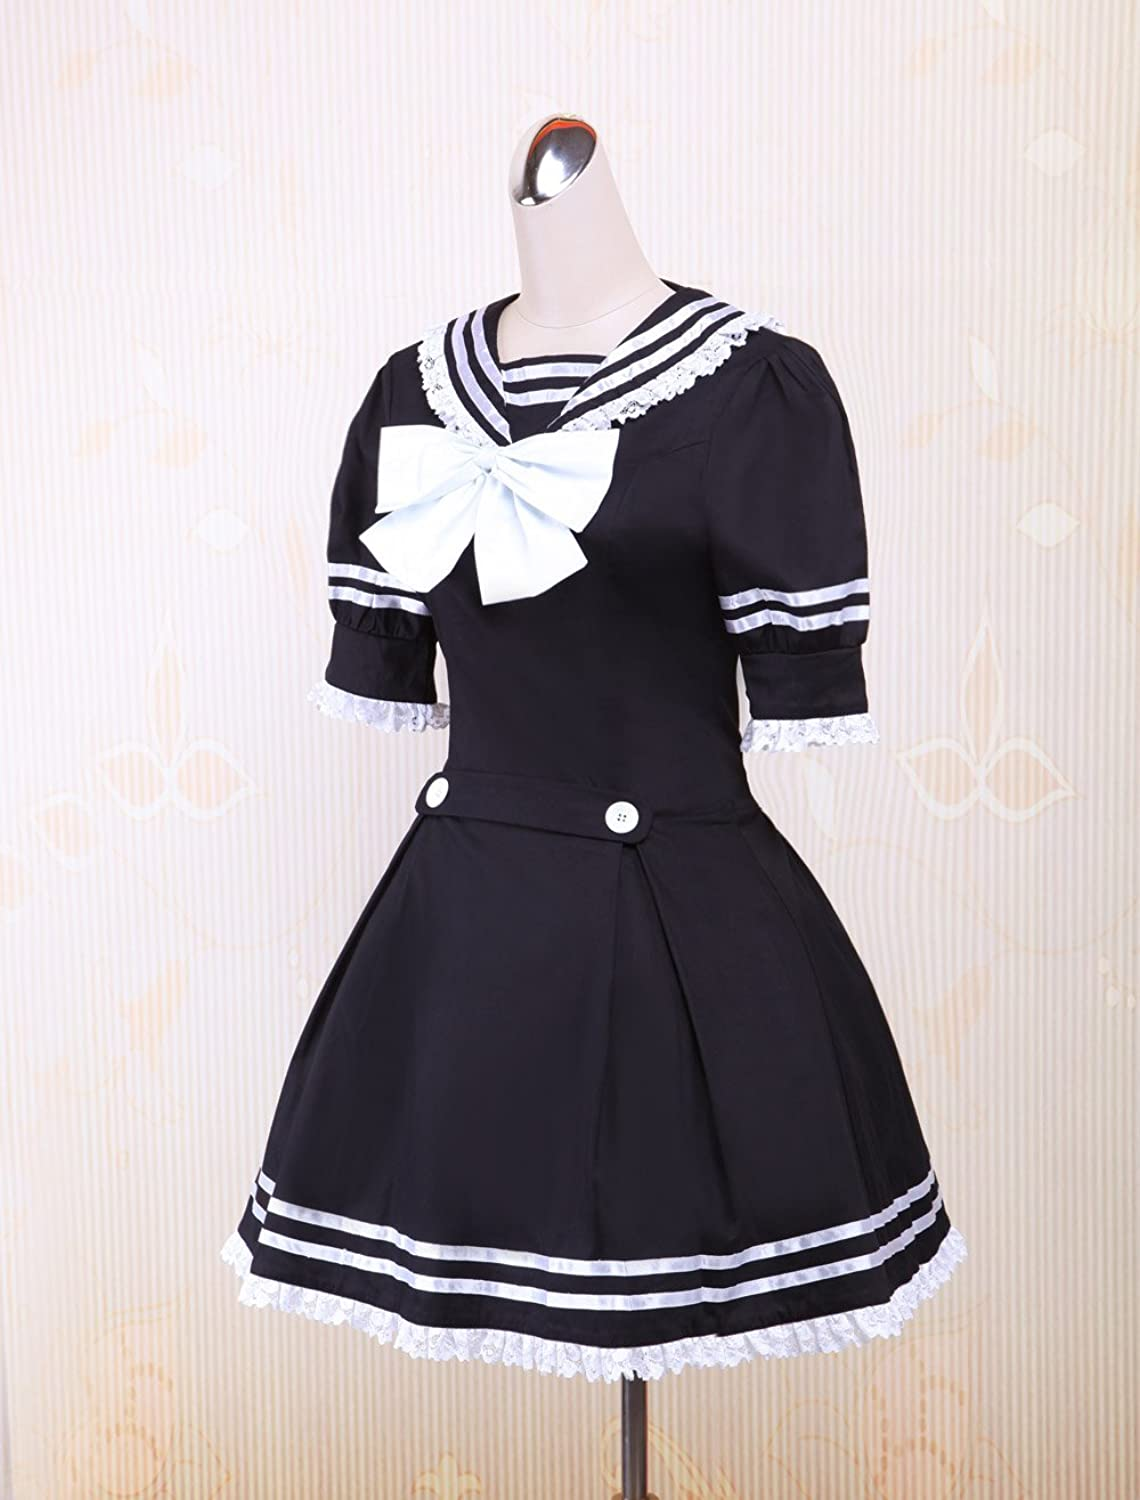 Vintage Style Children's Clothing: Girls, Boys, Baby, Toddler antaina Black Cotton Bow Lace Sweet Sailor Student Lolita Cosplay Dress $58.99 AT vintagedancer.com